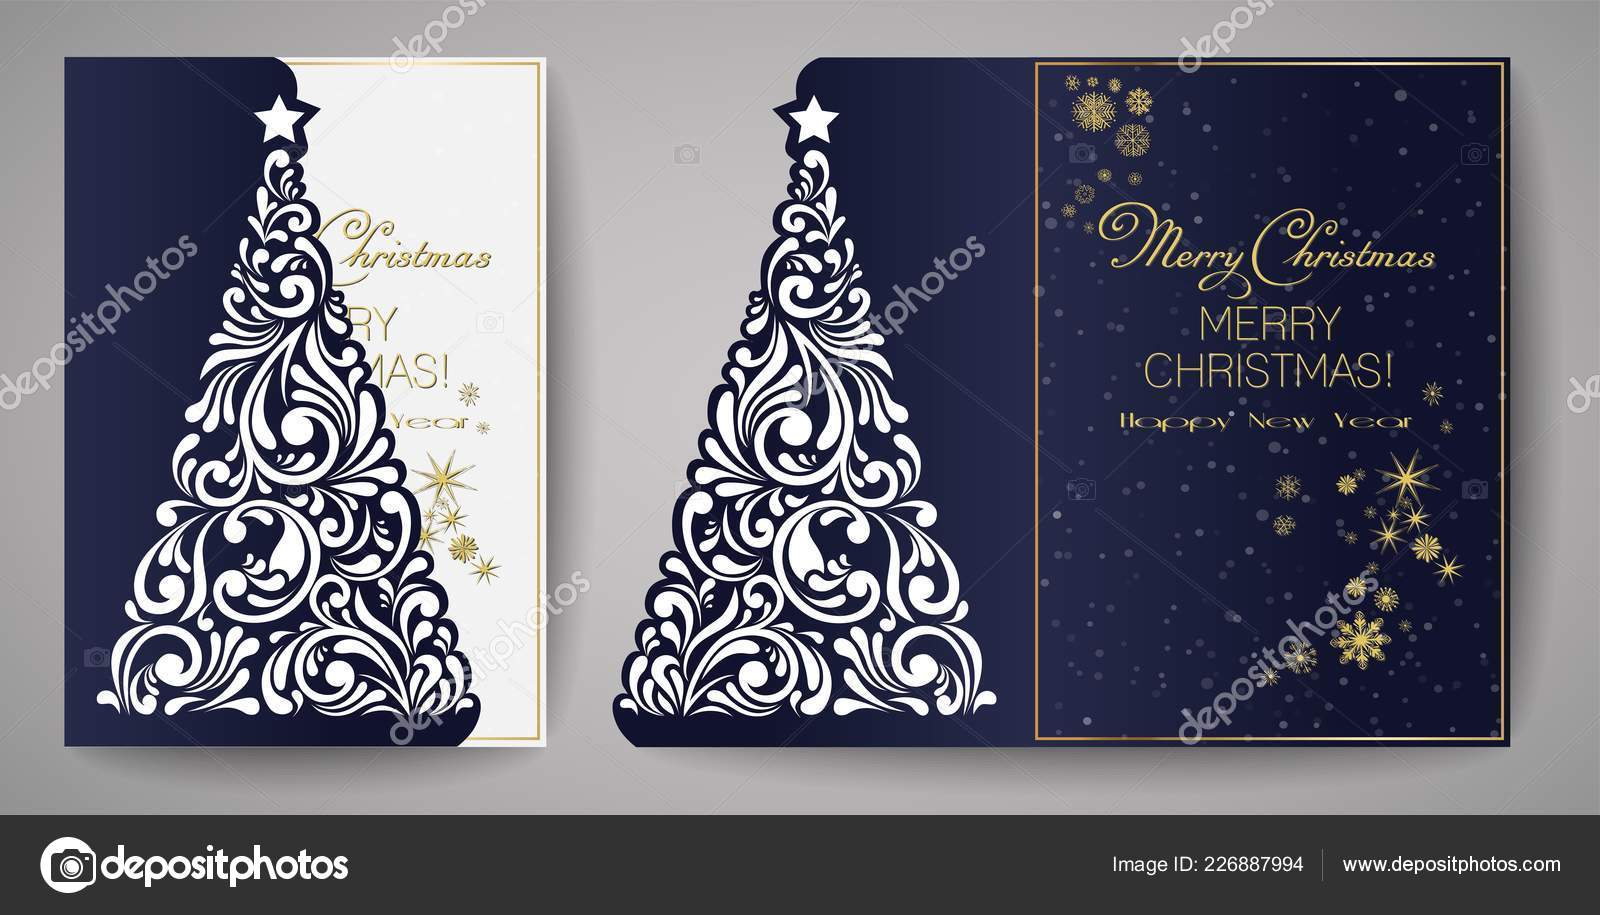 laser cut template for christmas cards square invitation for party